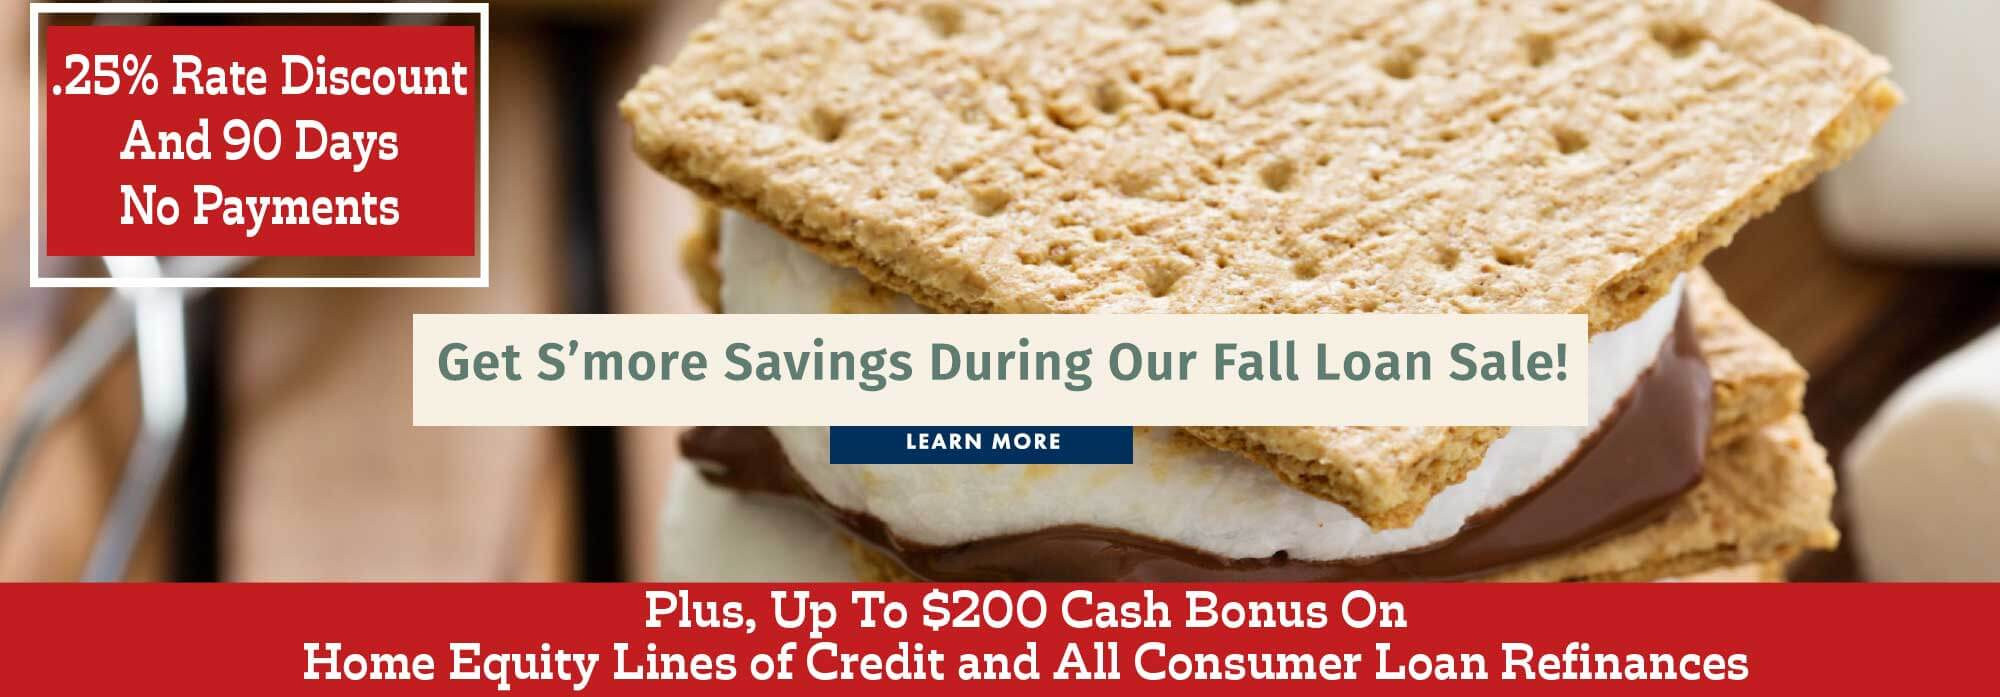 Get s'more savings during our fall loan sale!